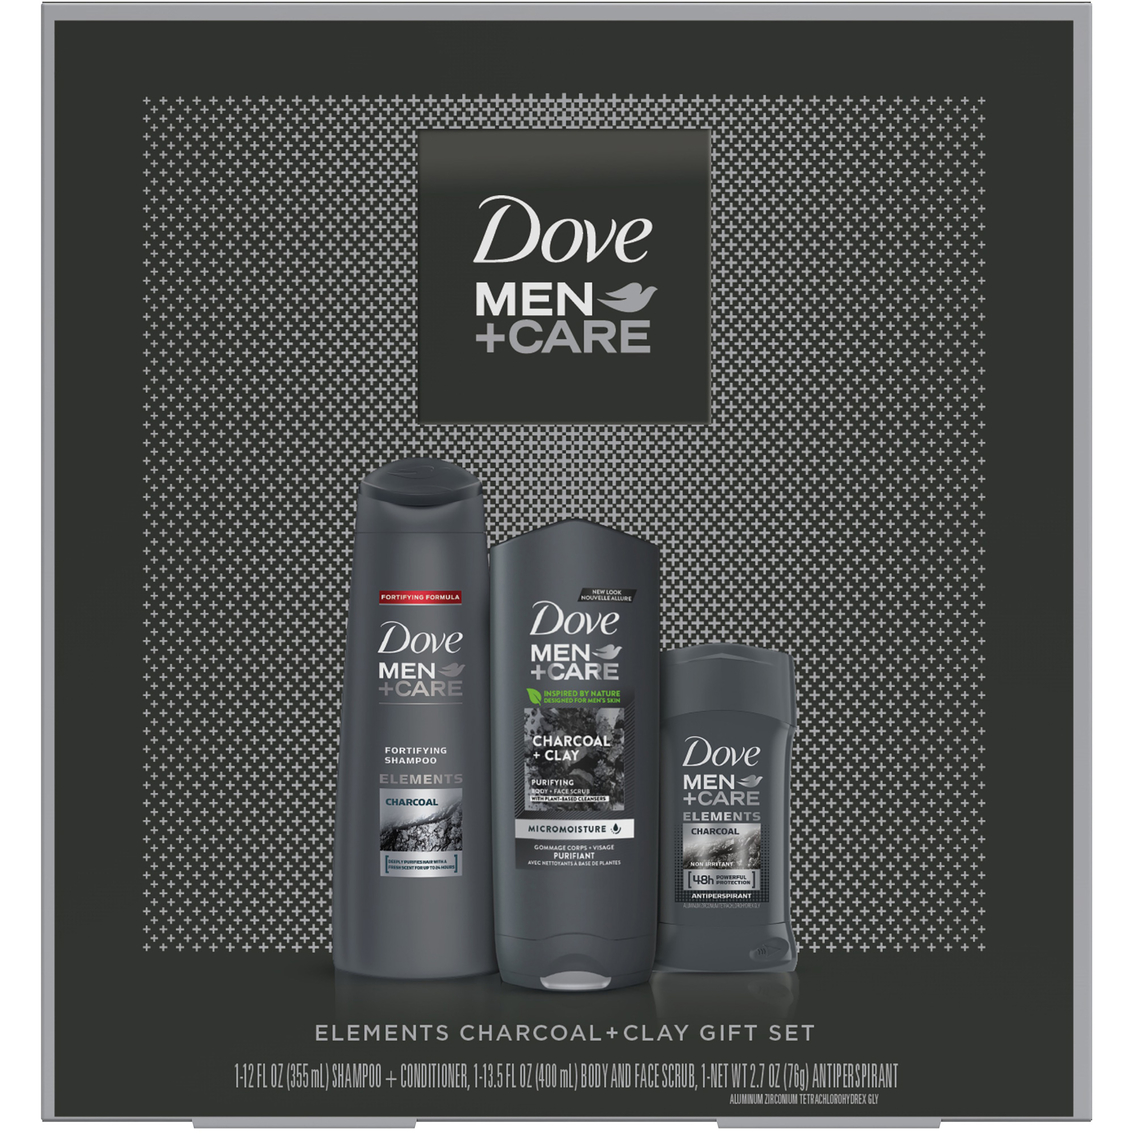 Dove Men Care Elements Charcoal Clay 3 Pc Gift Set Body Bath Gift Sets Beauty Health Shop The Exchange